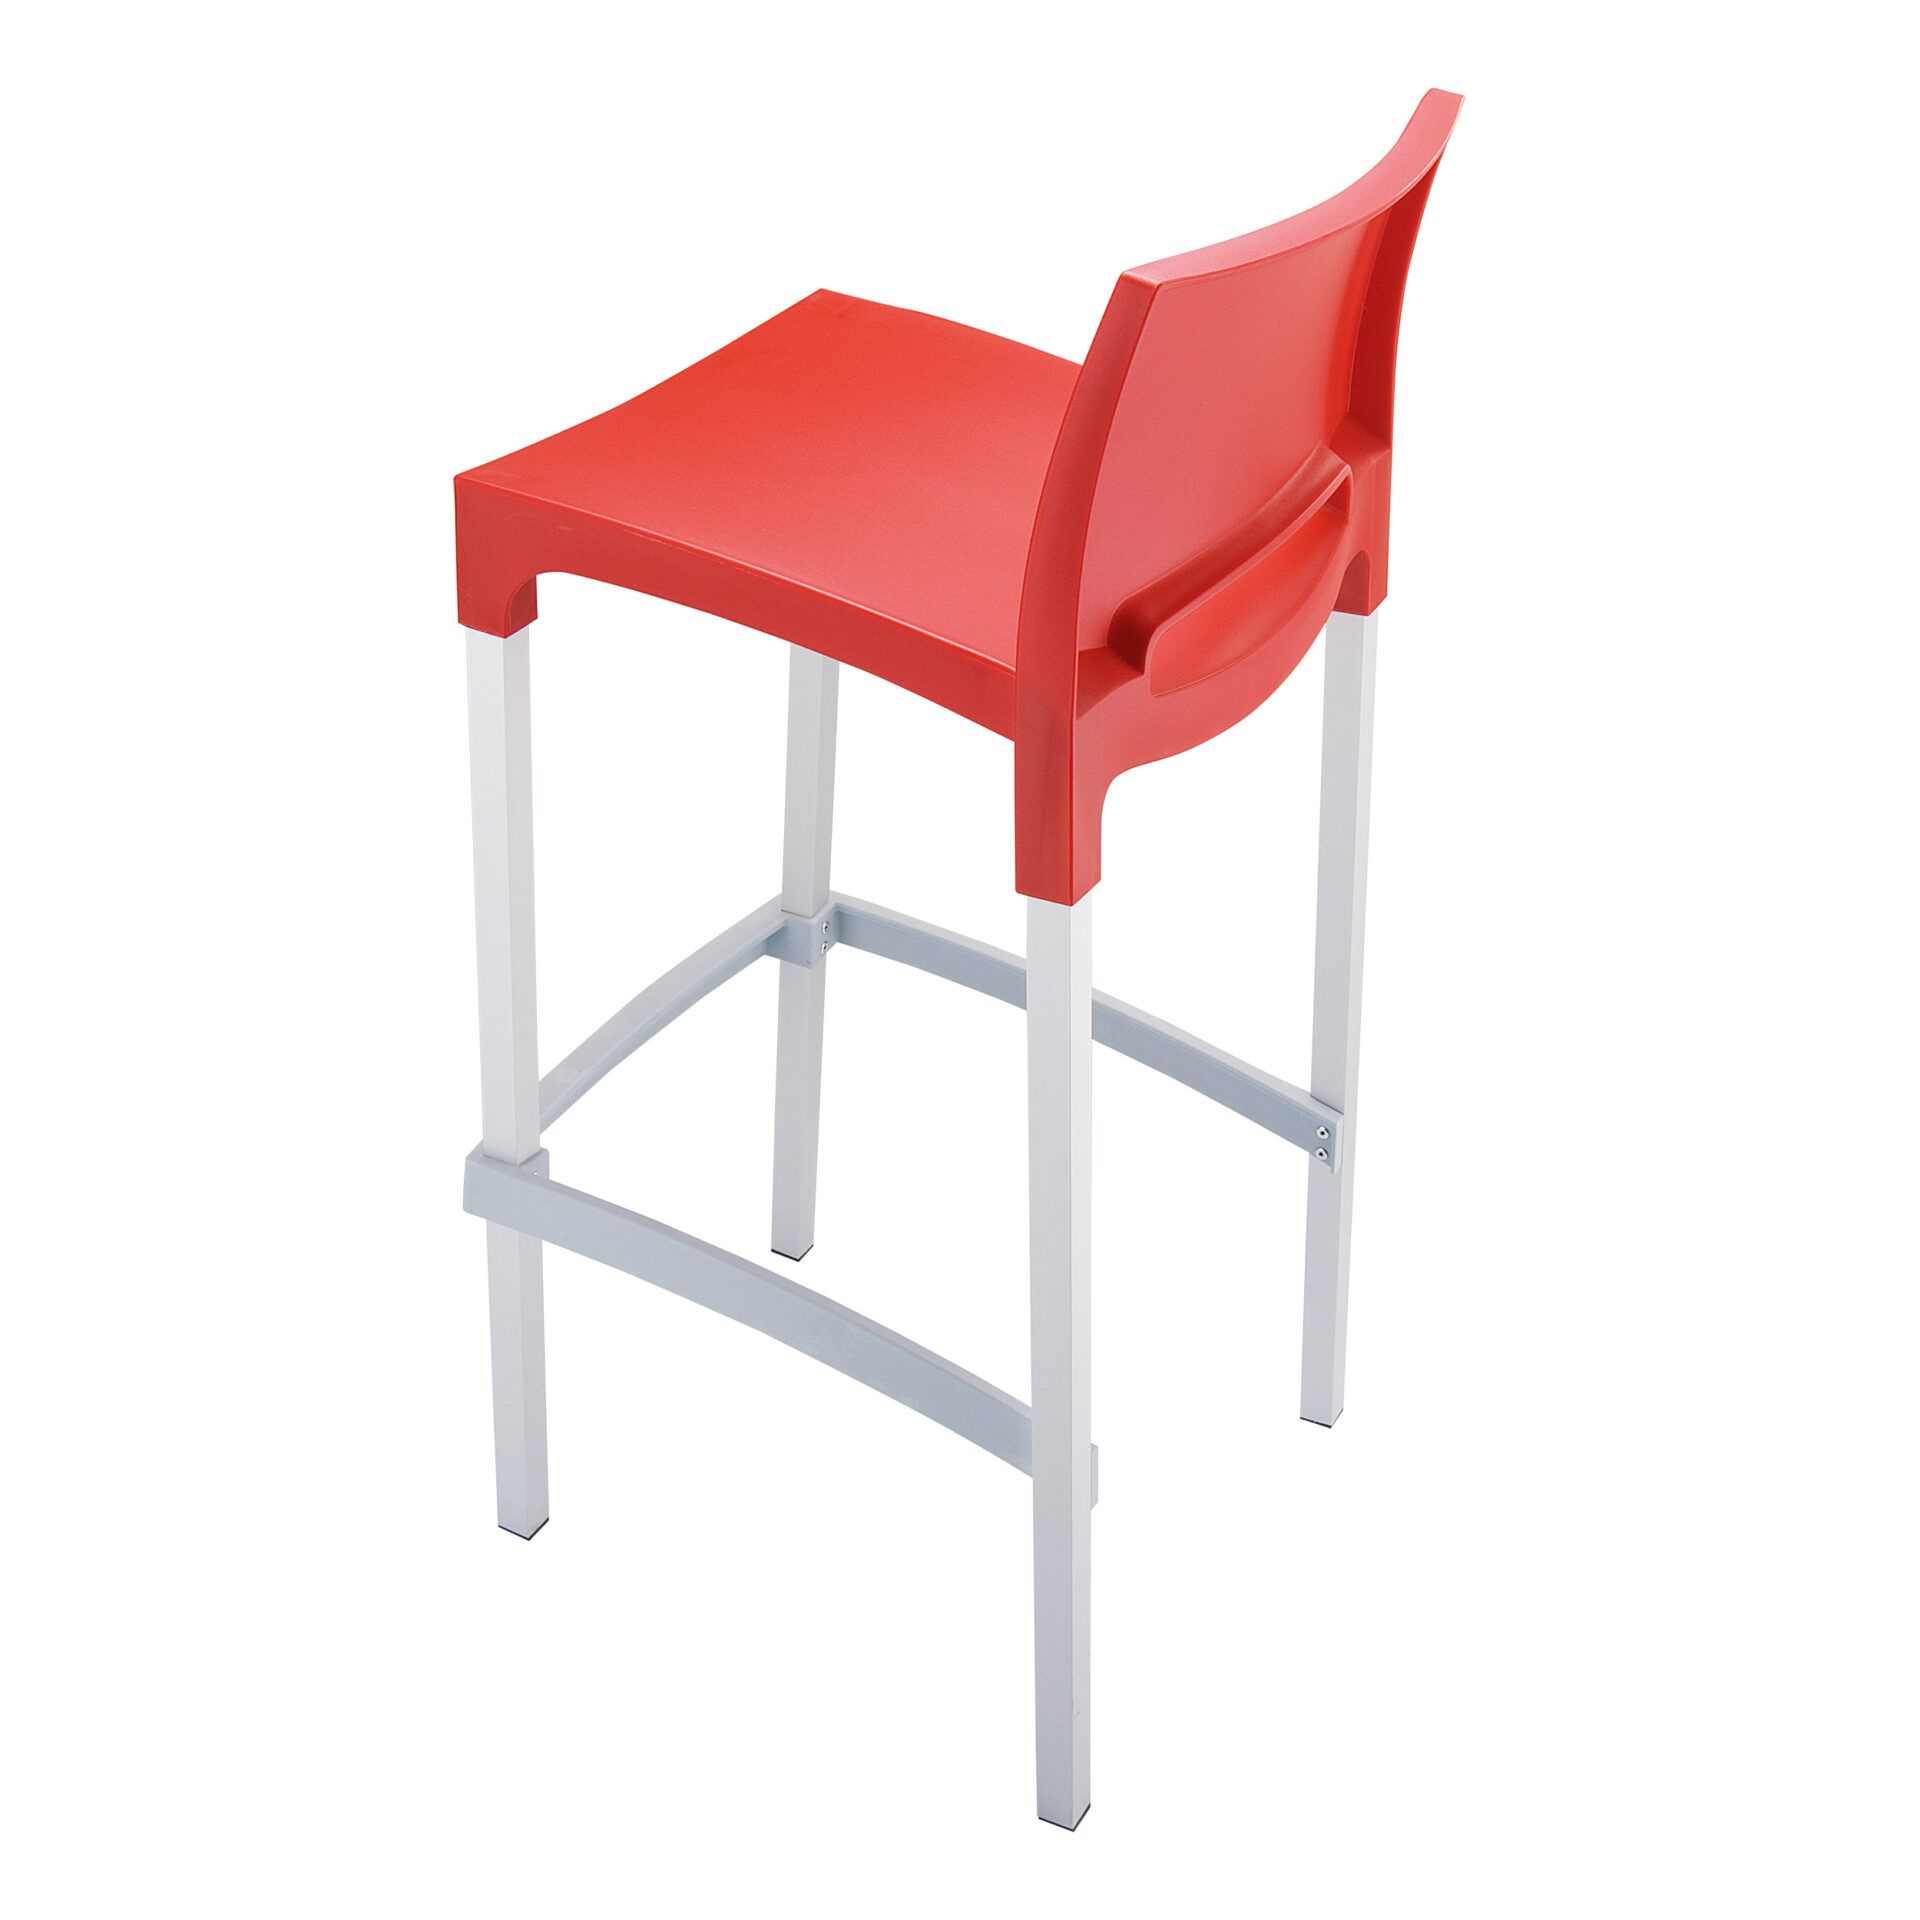 commercial plastic gio barstool red top side